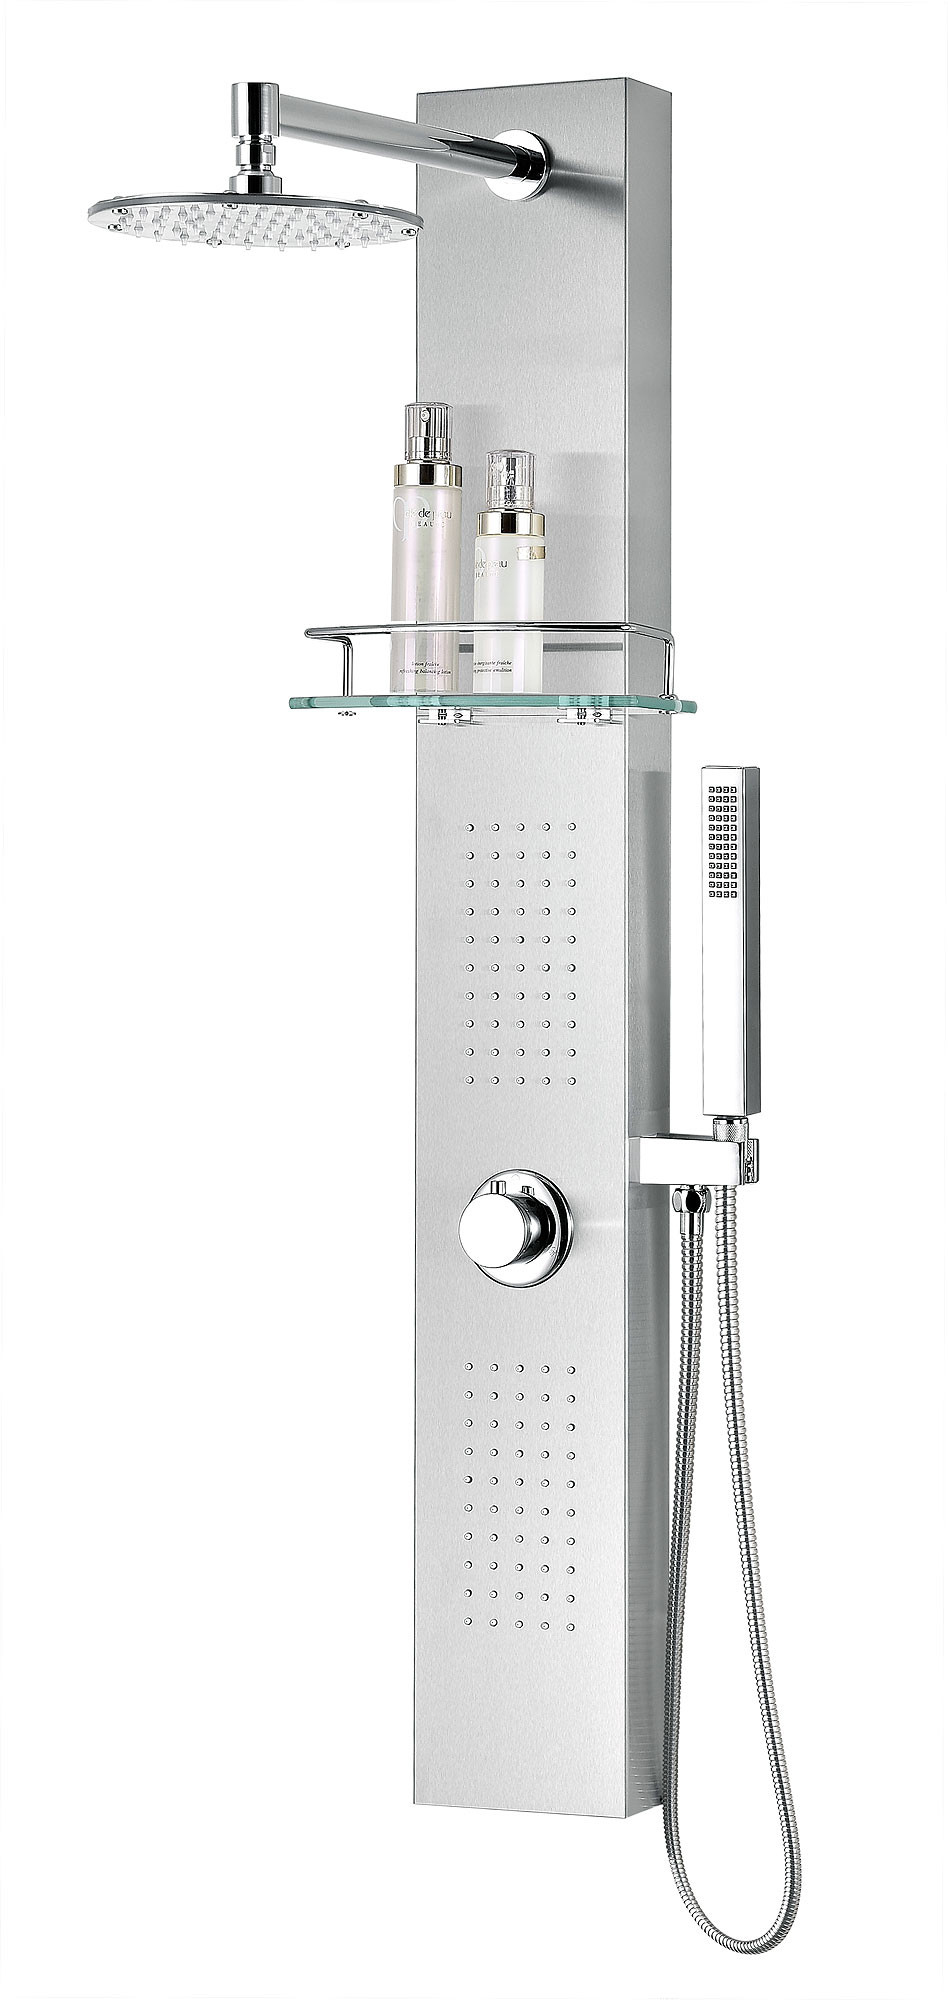 ANZZI SP-AZ075 Coastal Wall Mount Shower Panel In Brushed Stainless Steel